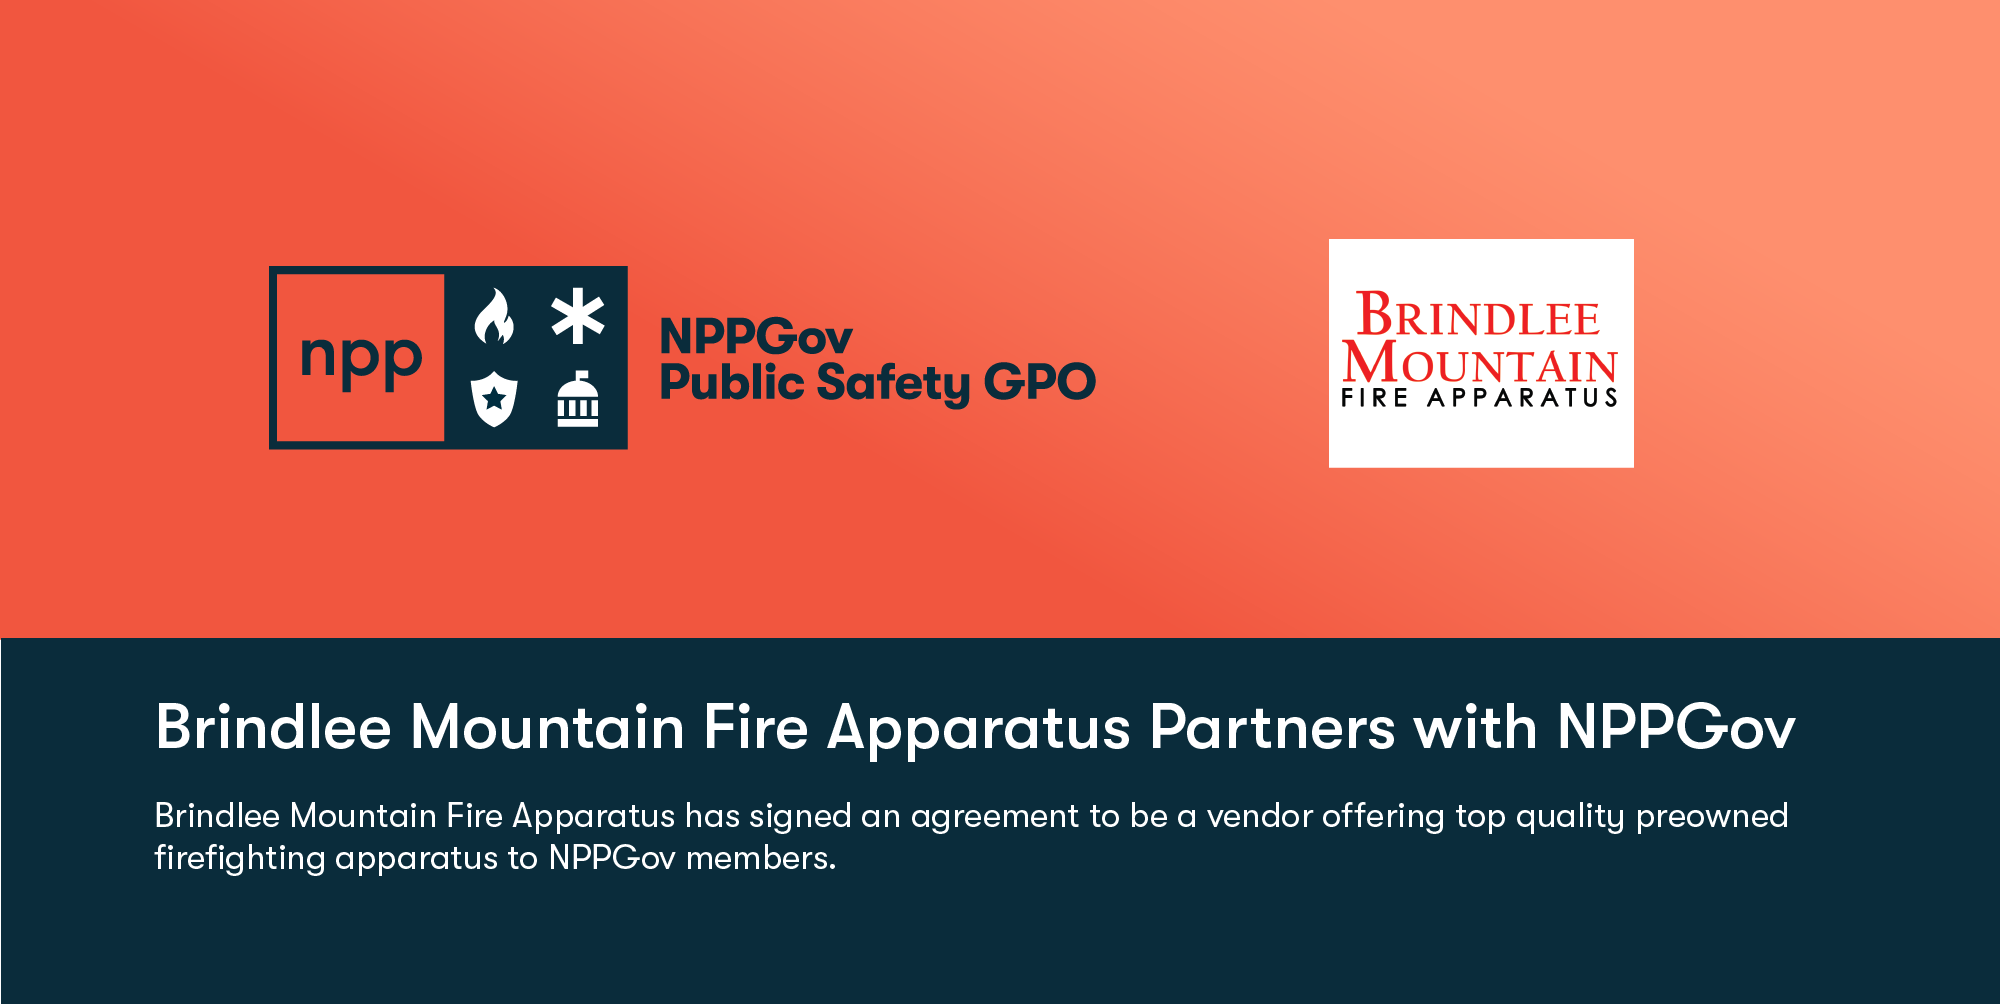 Brindlee Mountain Fire Apparatus Partners with NPPGov